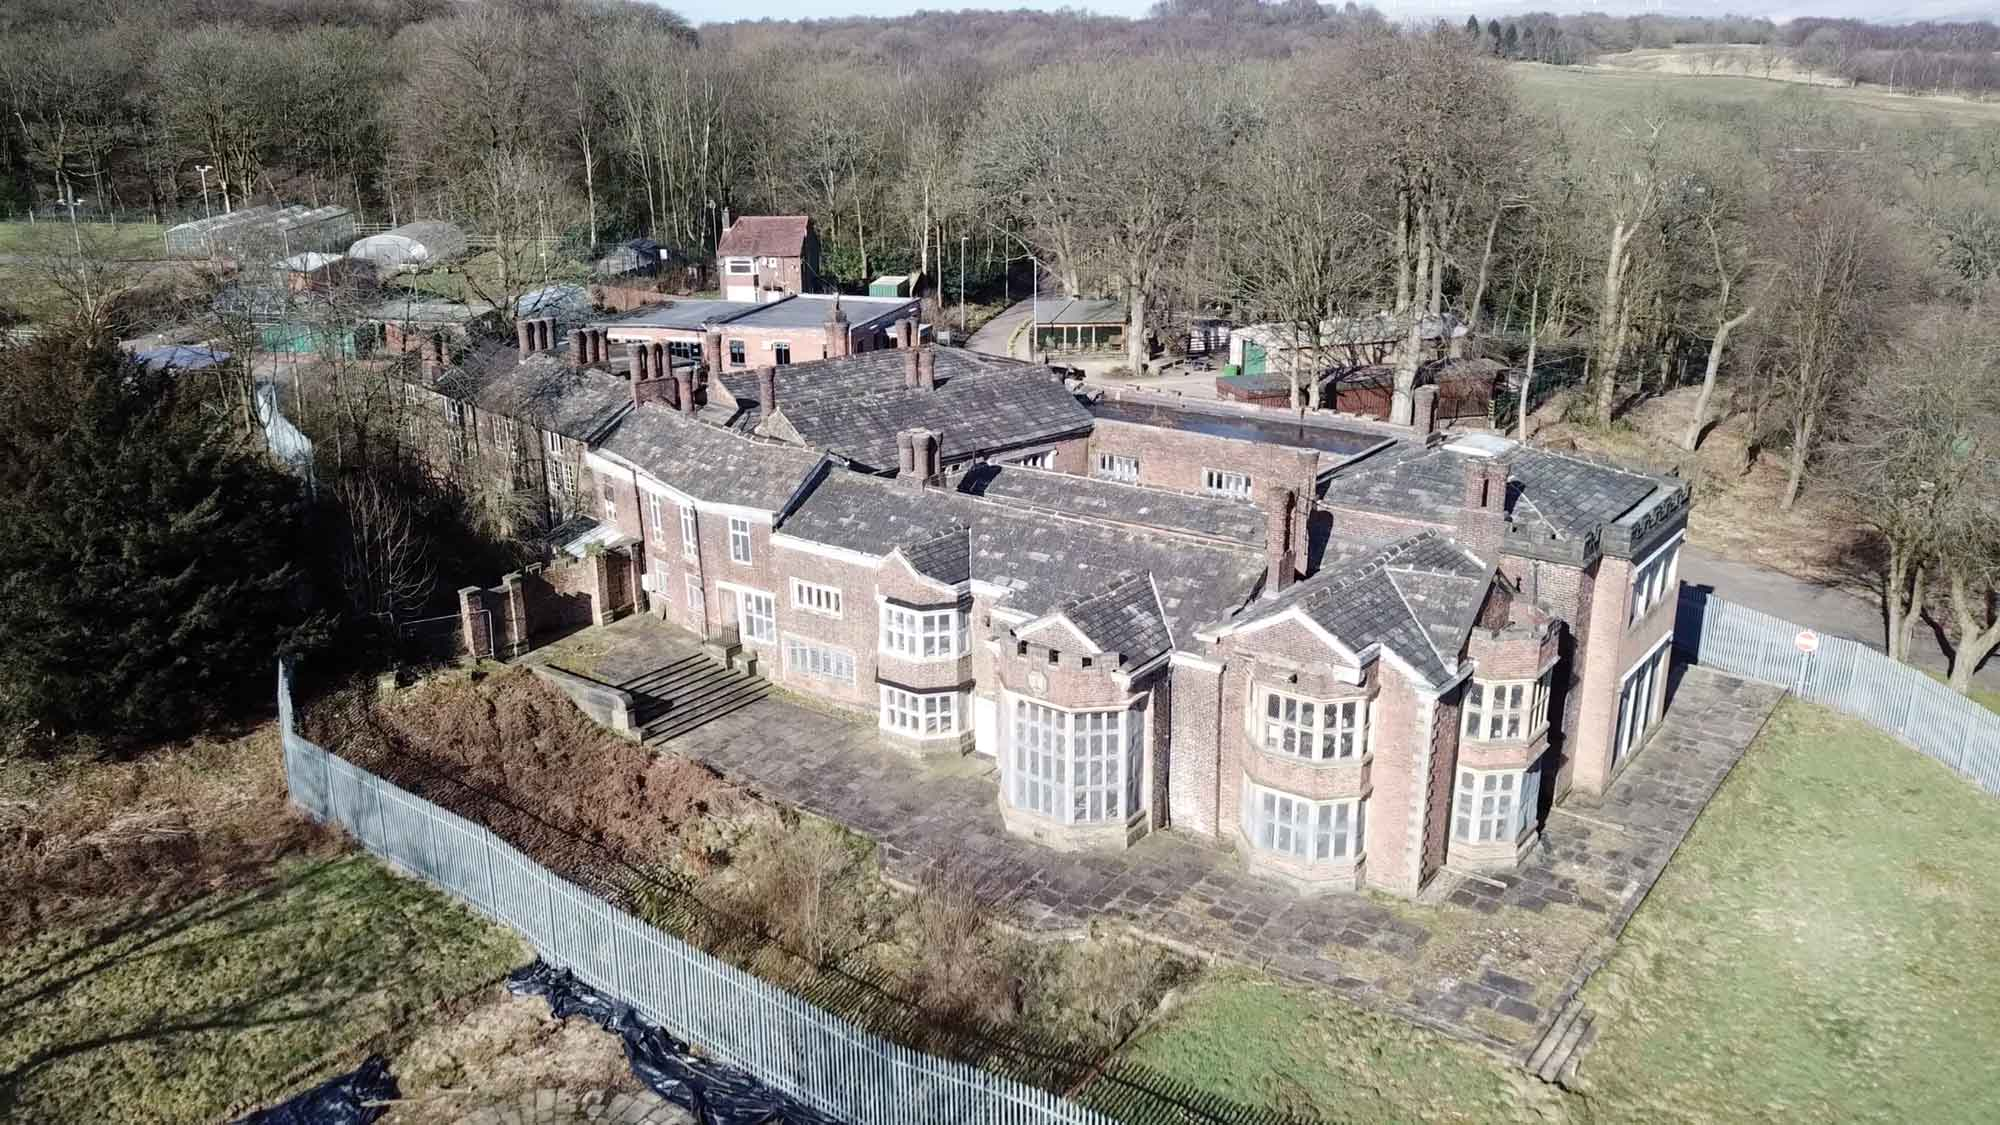 Second wave of emergency repairs underway at Hopwood Hall